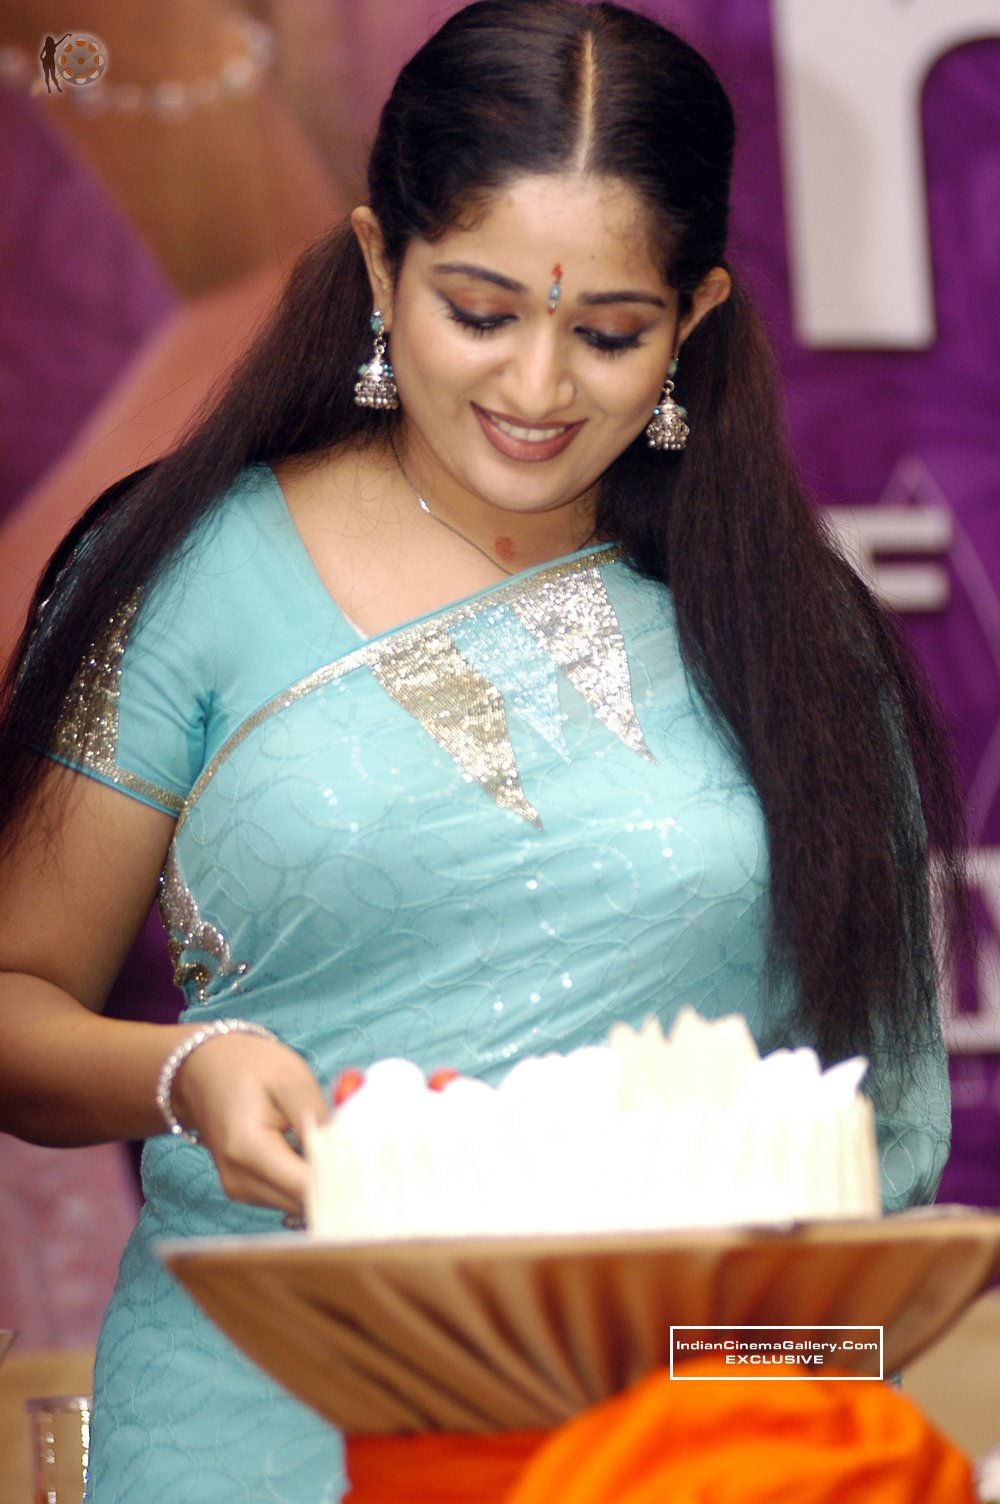 kavyamadhavan xxx video picture